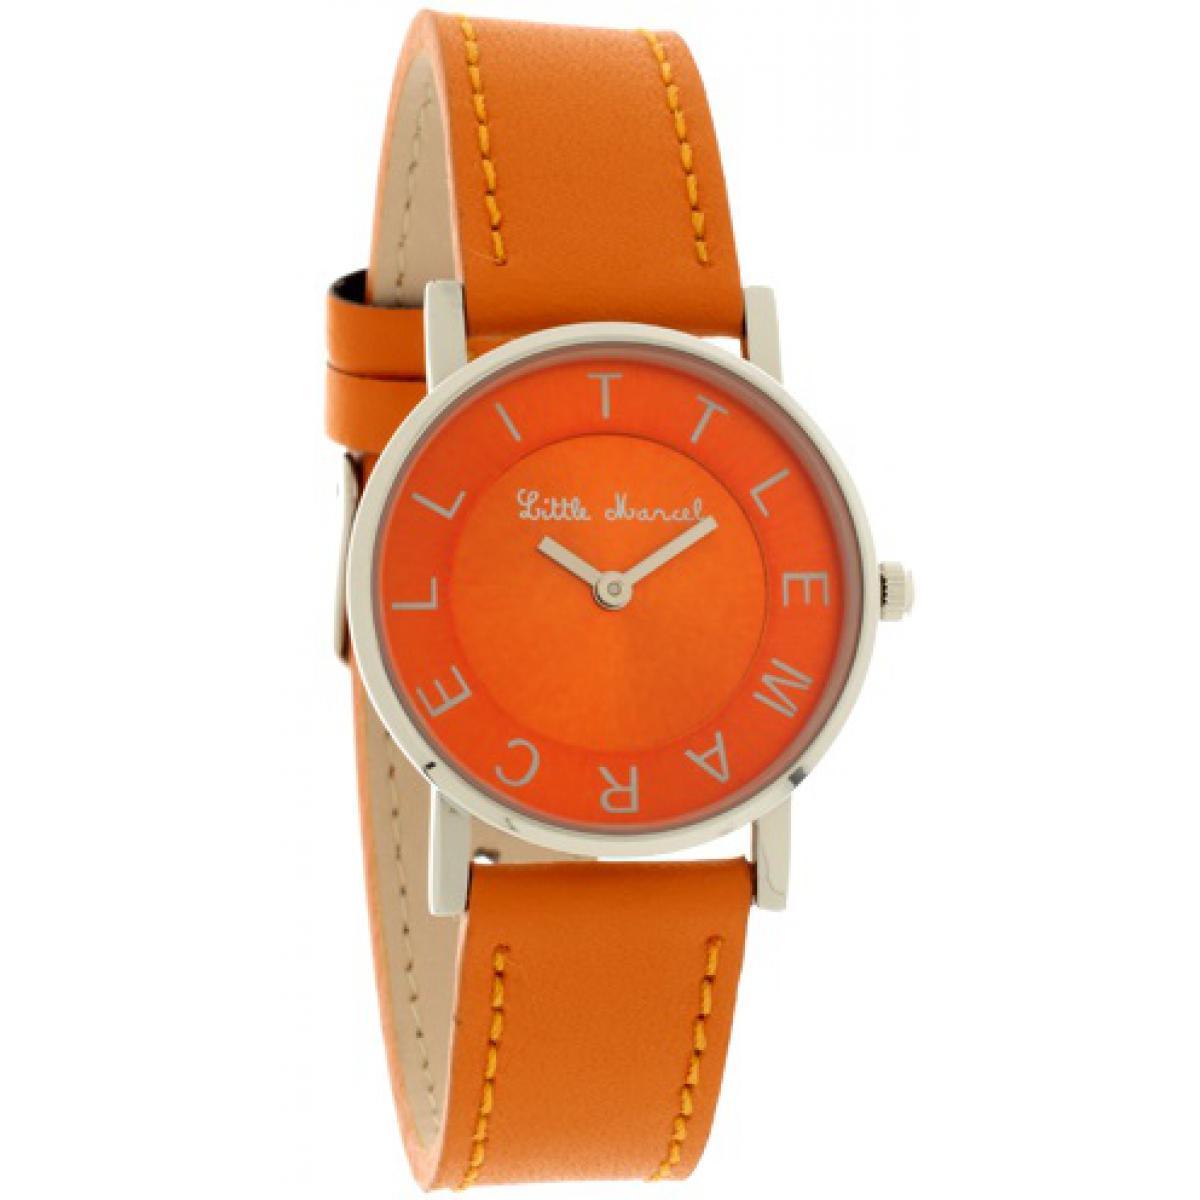 Montre Little marcel LM48OGC - Montre Ronde Cuir Orange Femme